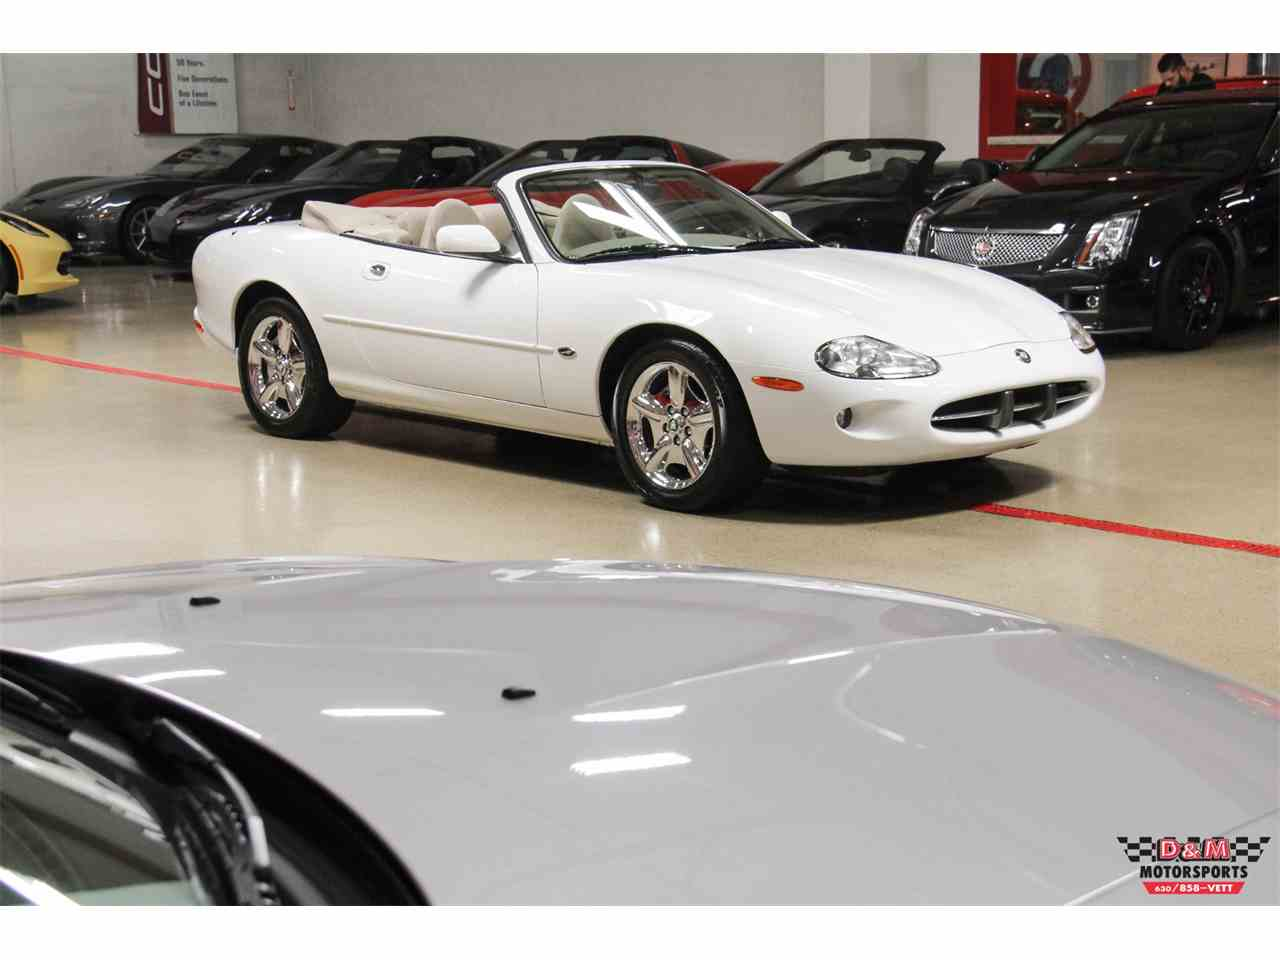 Large Picture of 1998 XK8 - $16,995.00 Offered by D & M Motorsports - MCA6